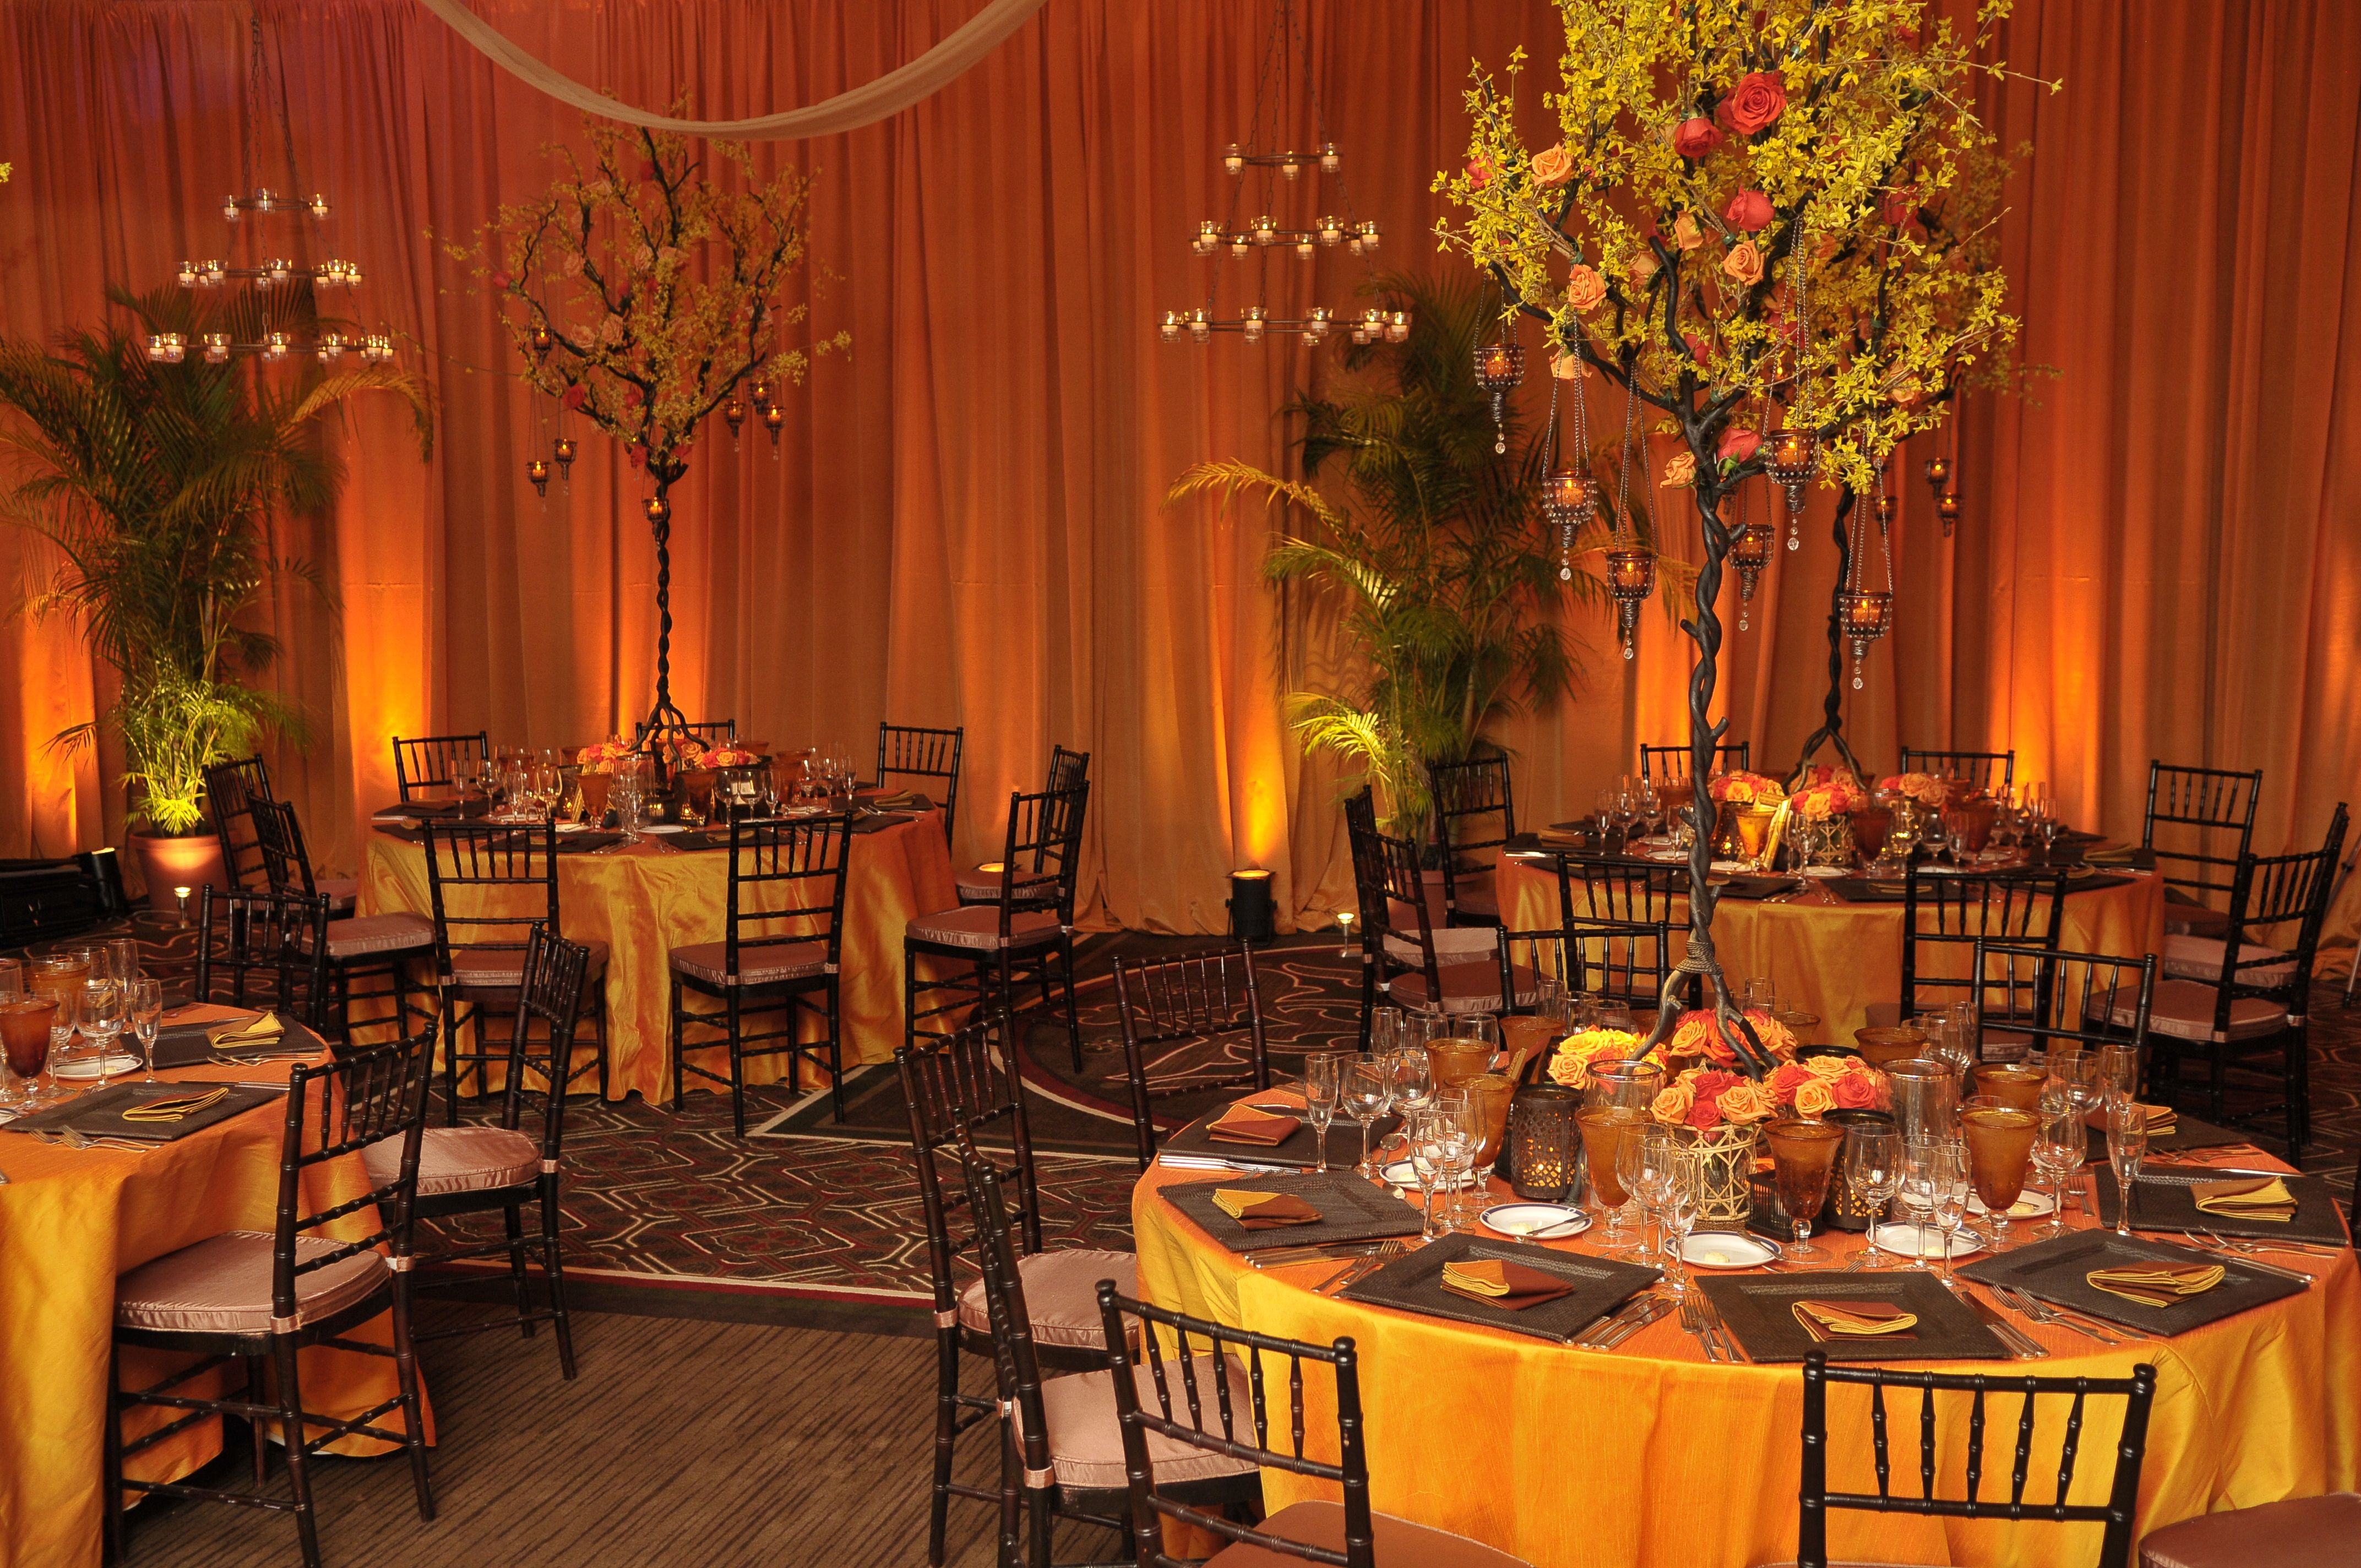 Fall Wedding #PGANational #fallwedding #PalmBeachWeddings #PGANationalResort